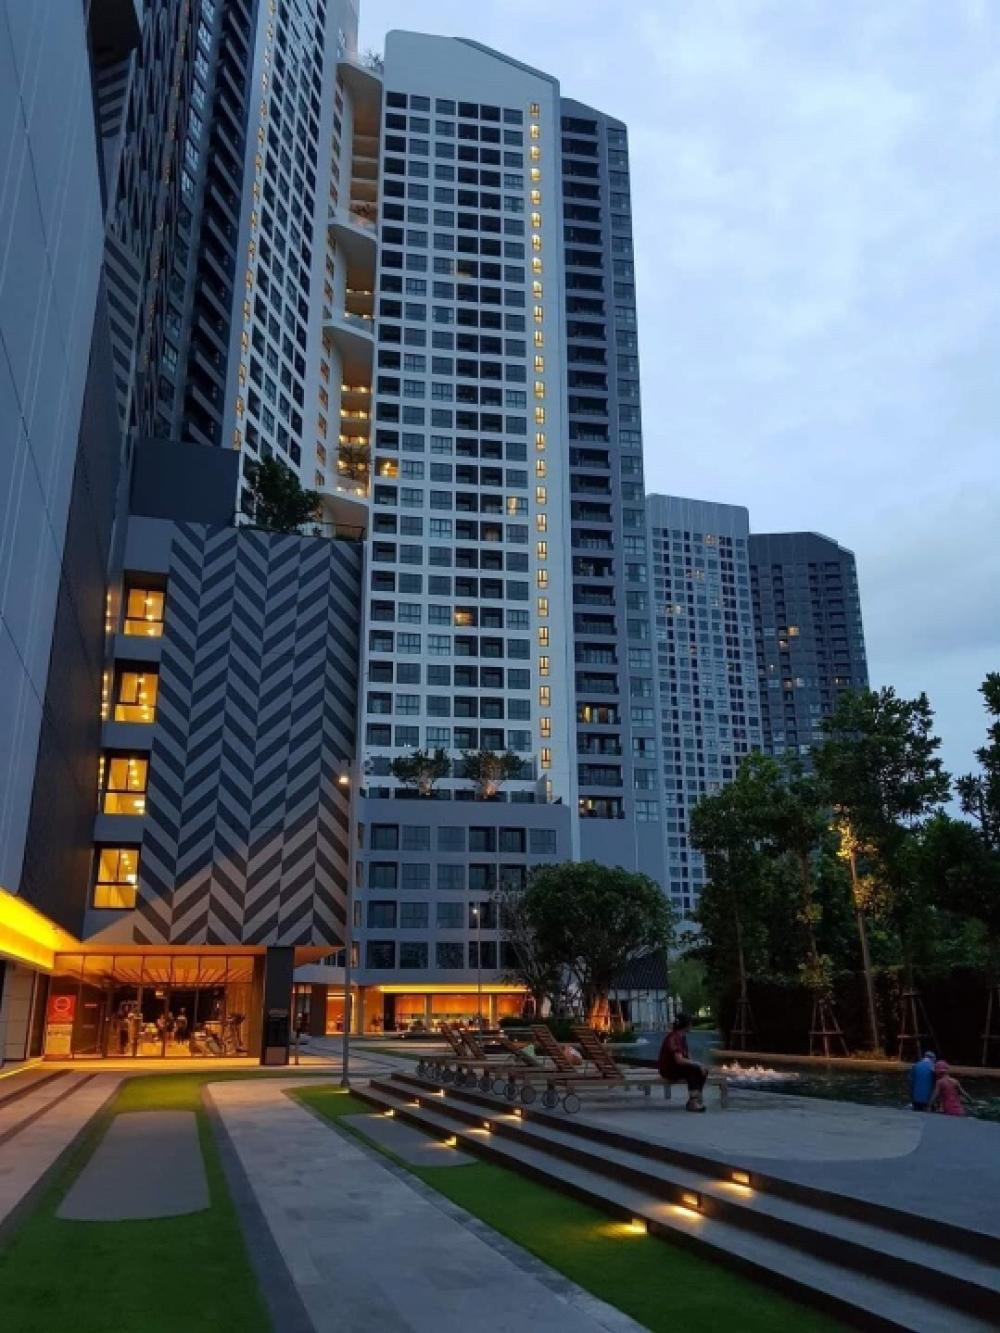 For RentCondoBangna, Lasalle, Bearing : NC-R264 Condo for rent, IDEO O2 (Ideo O2) Bangna, fully furnished room, clean, ready to move in, near BTS Bangna, 7th floor, Building C Type: Studio Size: 32 sq.m. ต Rent 9,500 baht / month ************************************************** ******** 📷 Ful